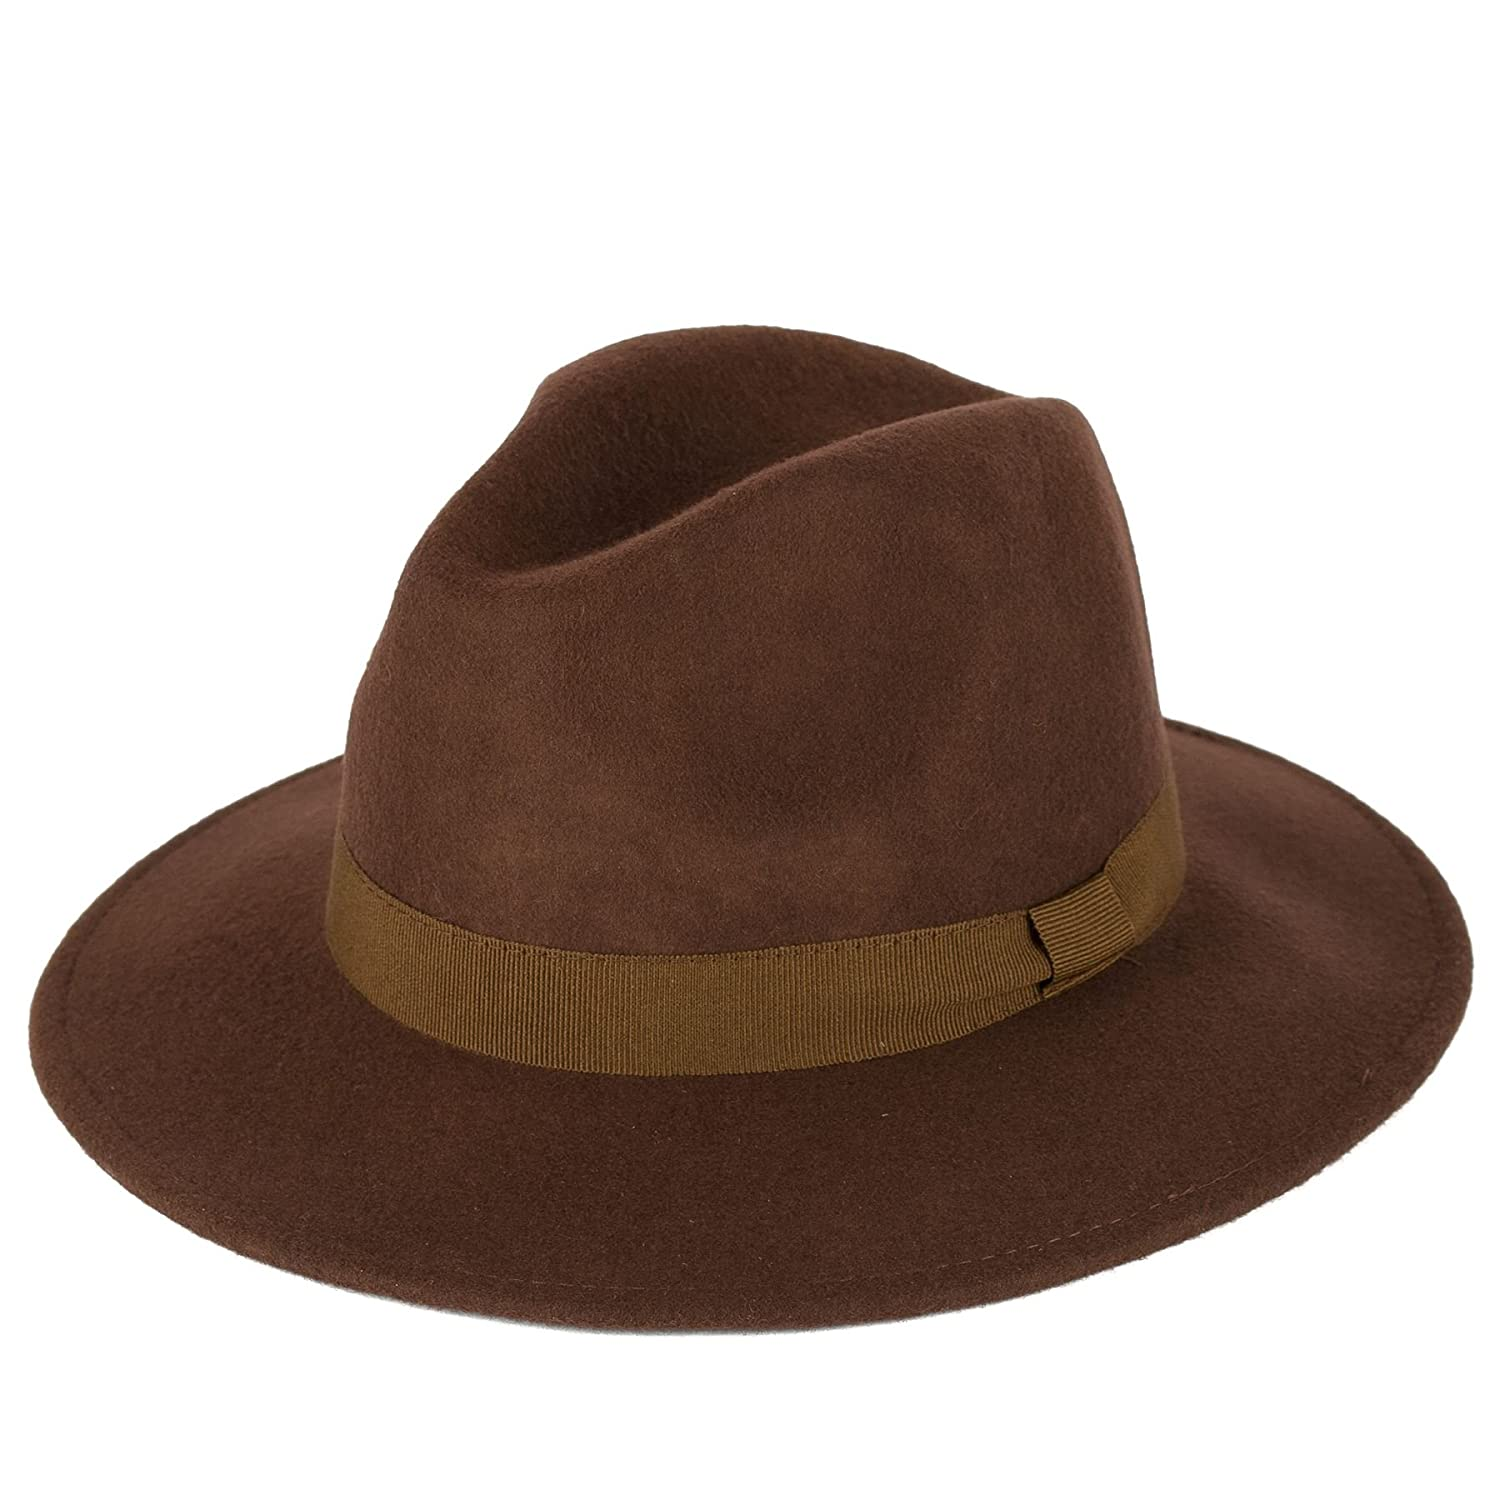 32cdfd8bc852ce Men's Ladies Handmade Fedora Hat Made In Italy 100% Wool Felt Bow Style  Band - Brown (61/XL): Amazon.co.uk: Clothing